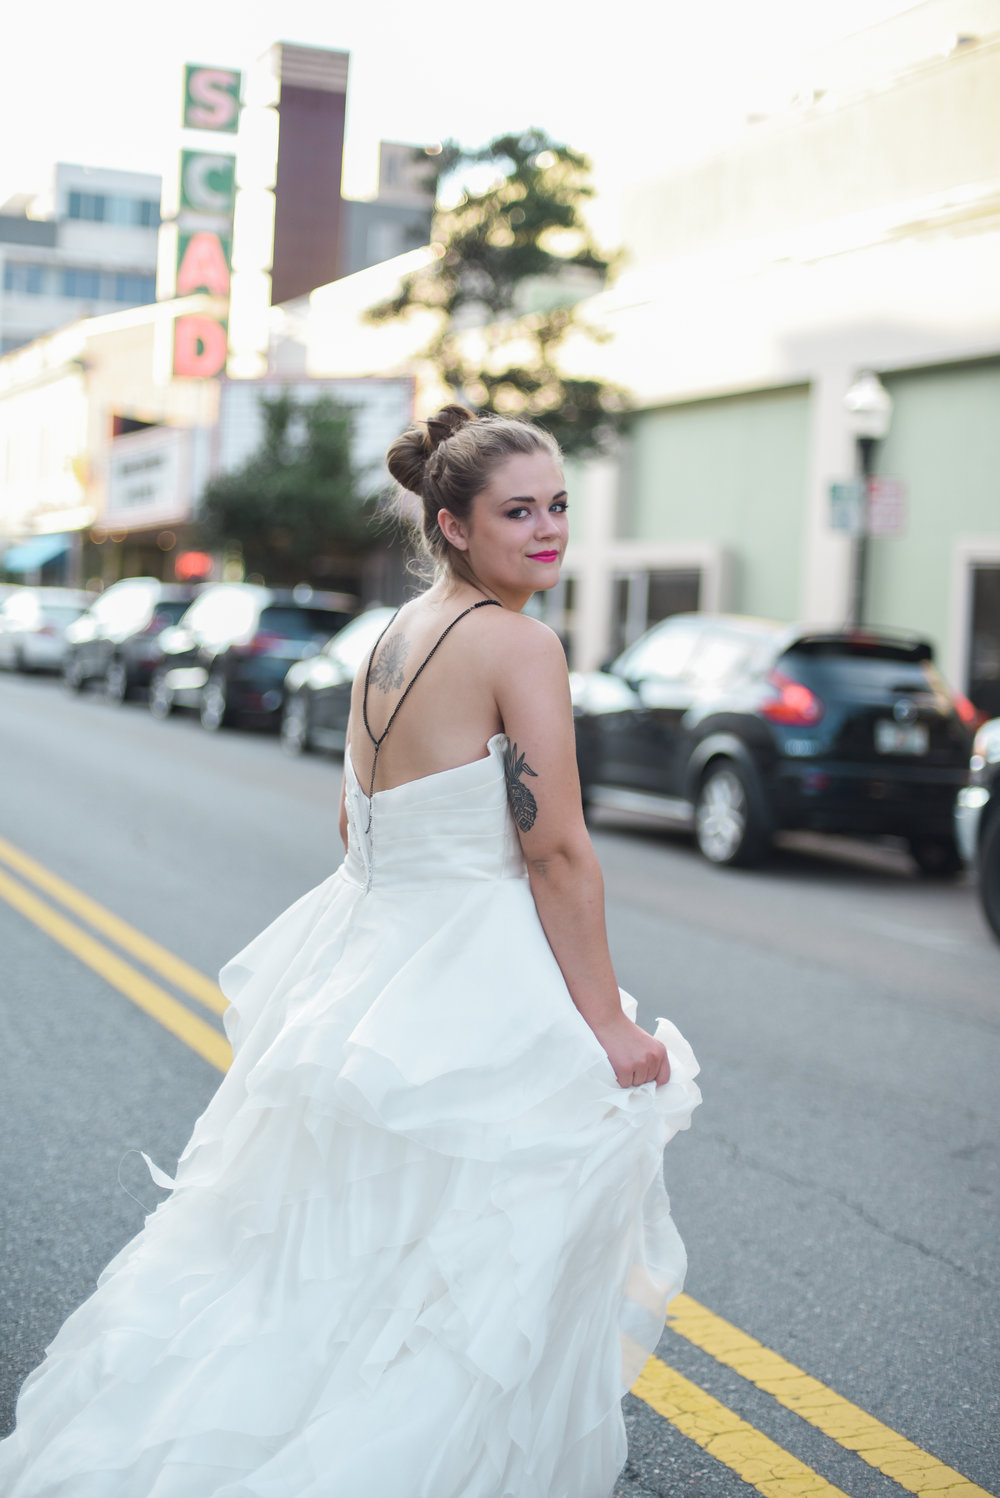 auburn-maggie-sottero-ivory-and-beau-savannah-bridal-boutique-savannah-wedding-planner-savannah-weddings-savannah-brides-southern-brides-leopolds-on-broughton-street-savannah-ballgown.JPG